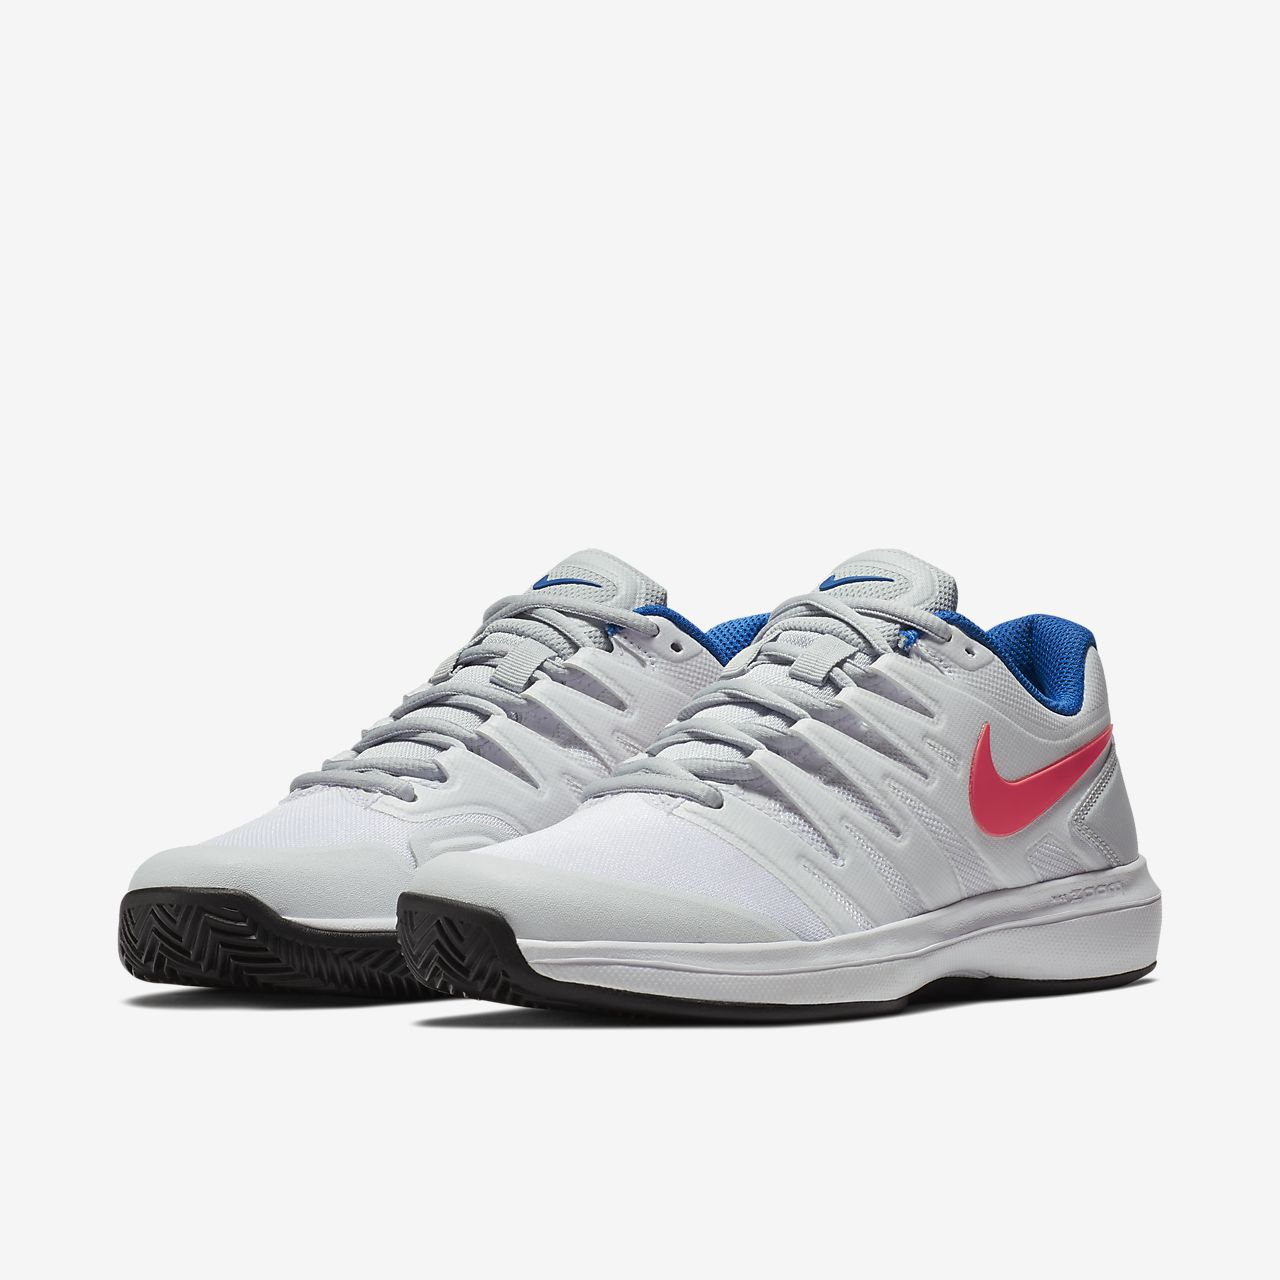 Nike PerformanceAIR ZOOM PRESTIGE CLY - Outdoor tennis shoes - white/hot lava/pure platinum/blue nZdrs8PxT